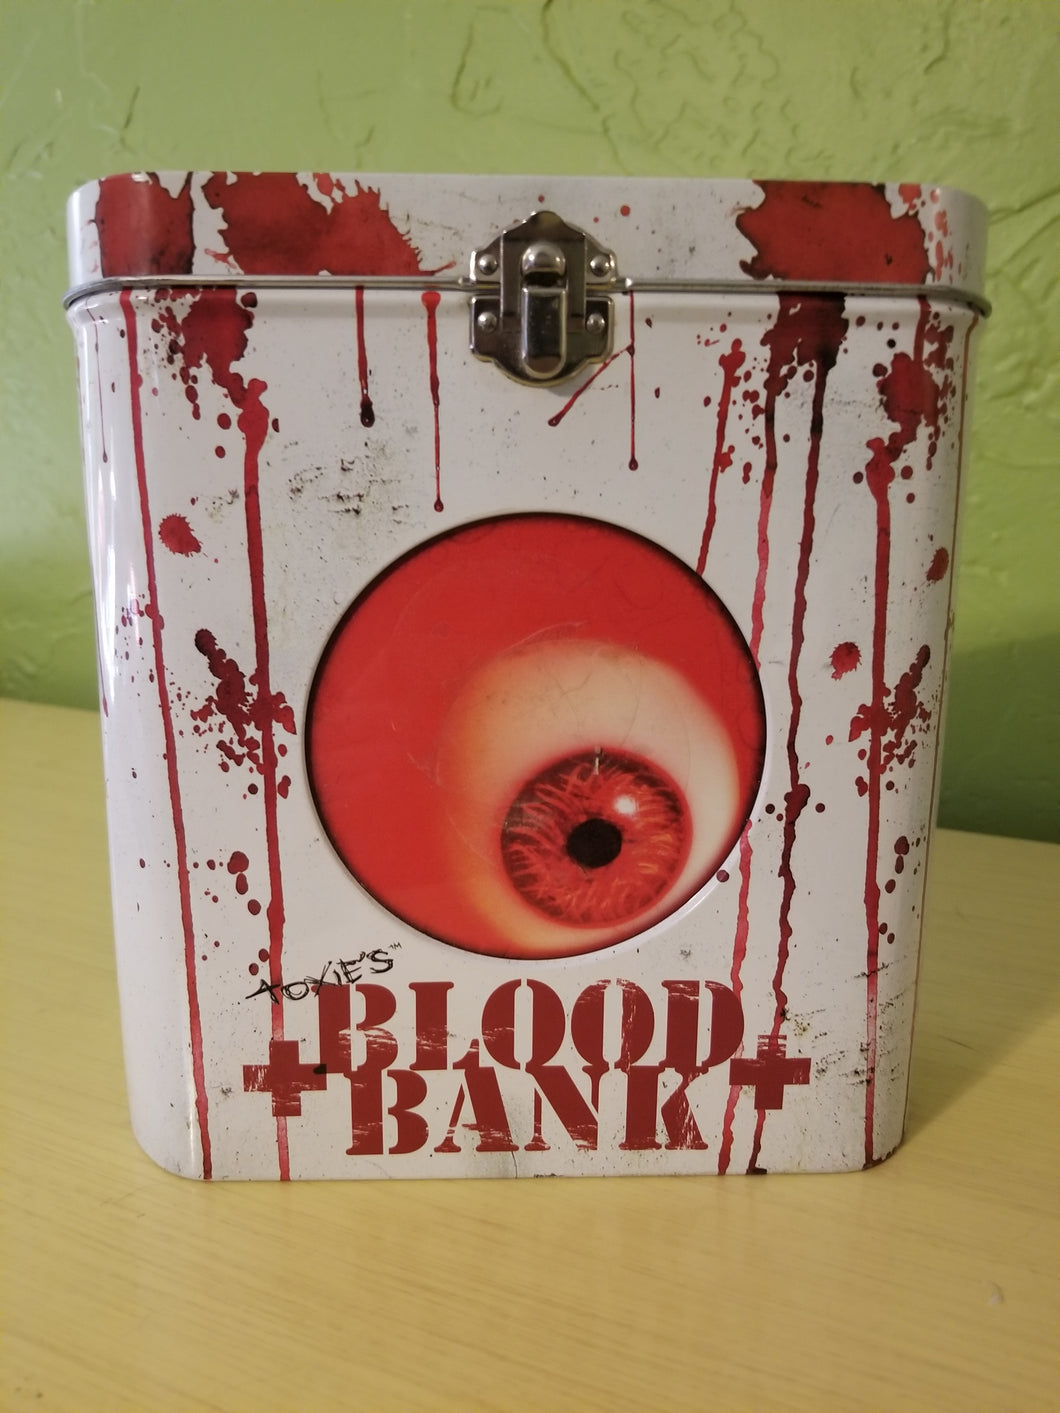 Toxie's Blood Bank DVD Set